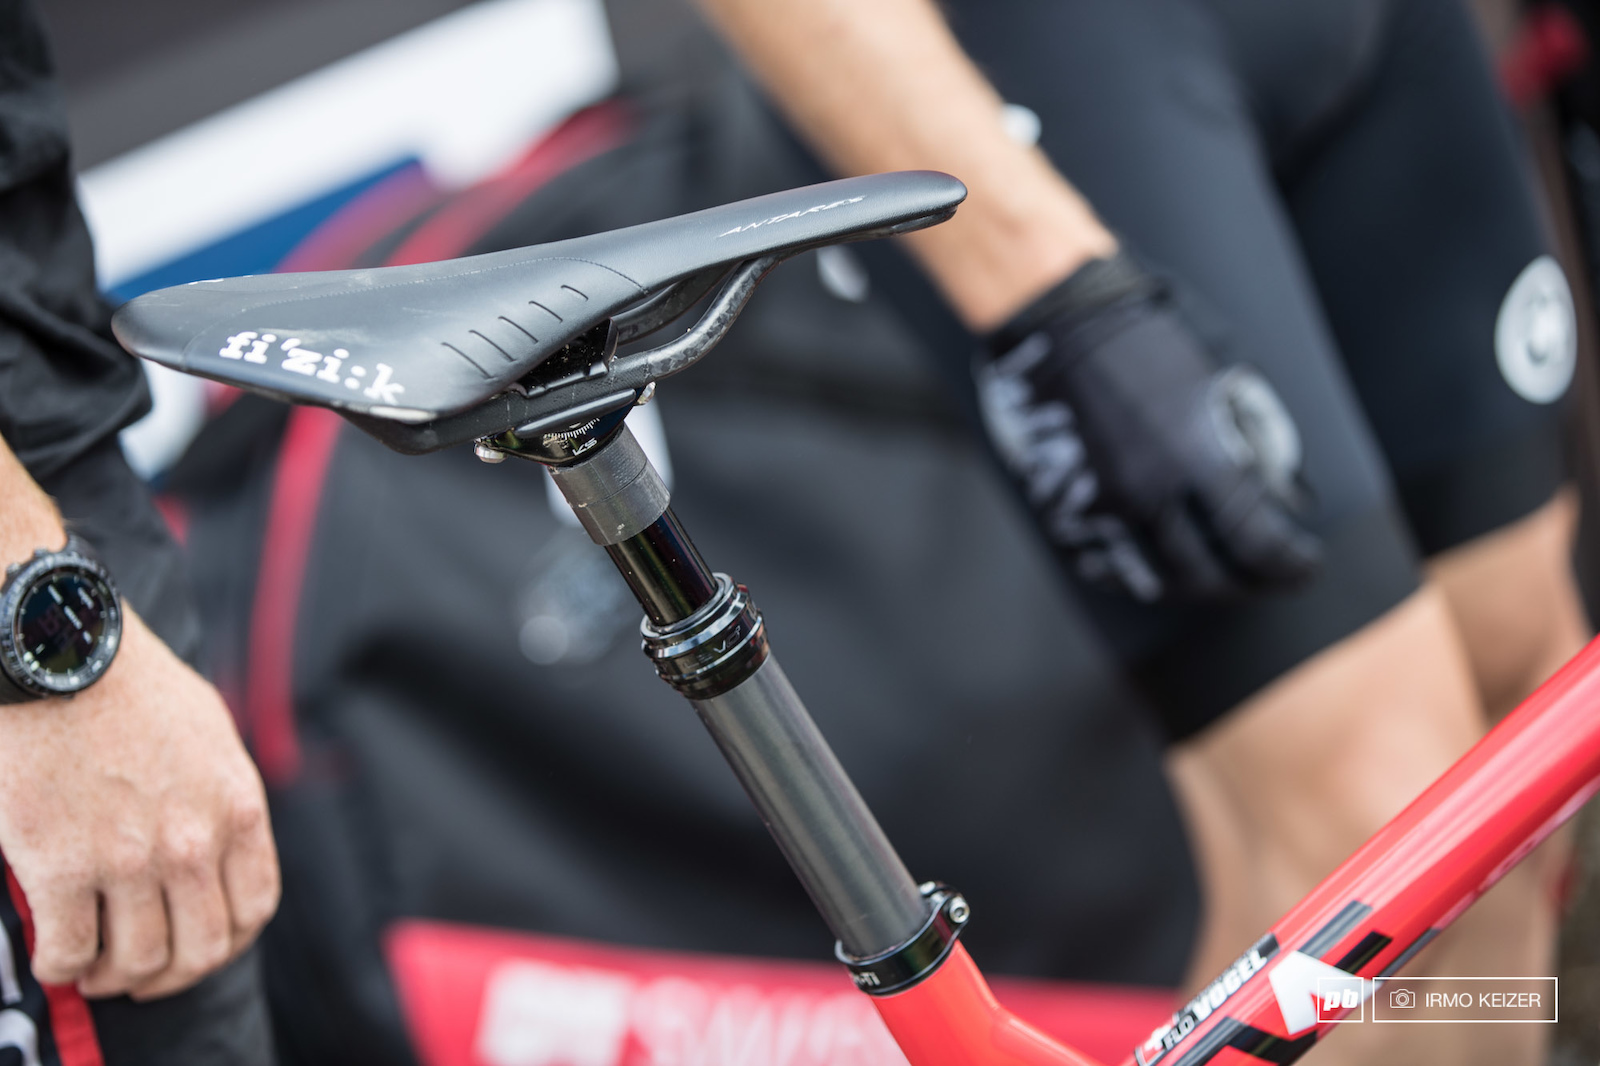 KS Lev s dropper seatpost is rocking on more and more XC bikes like on Florian Vogel s.